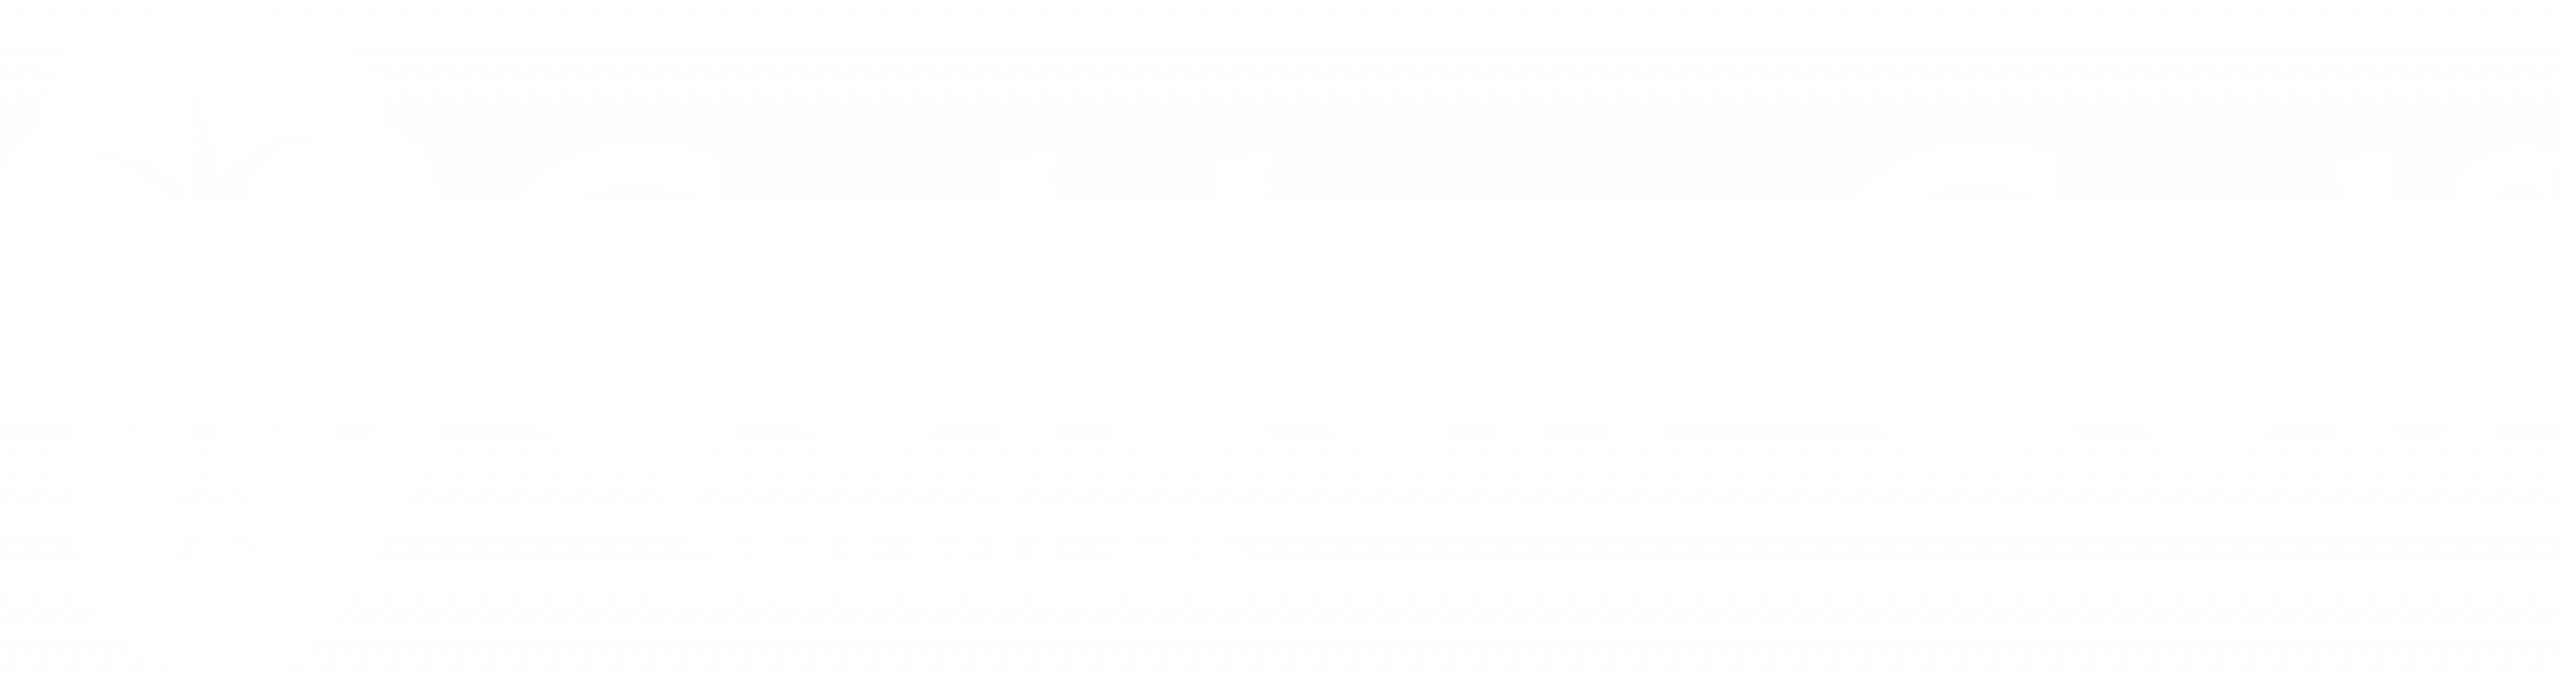 Golden Golf Services logo in white